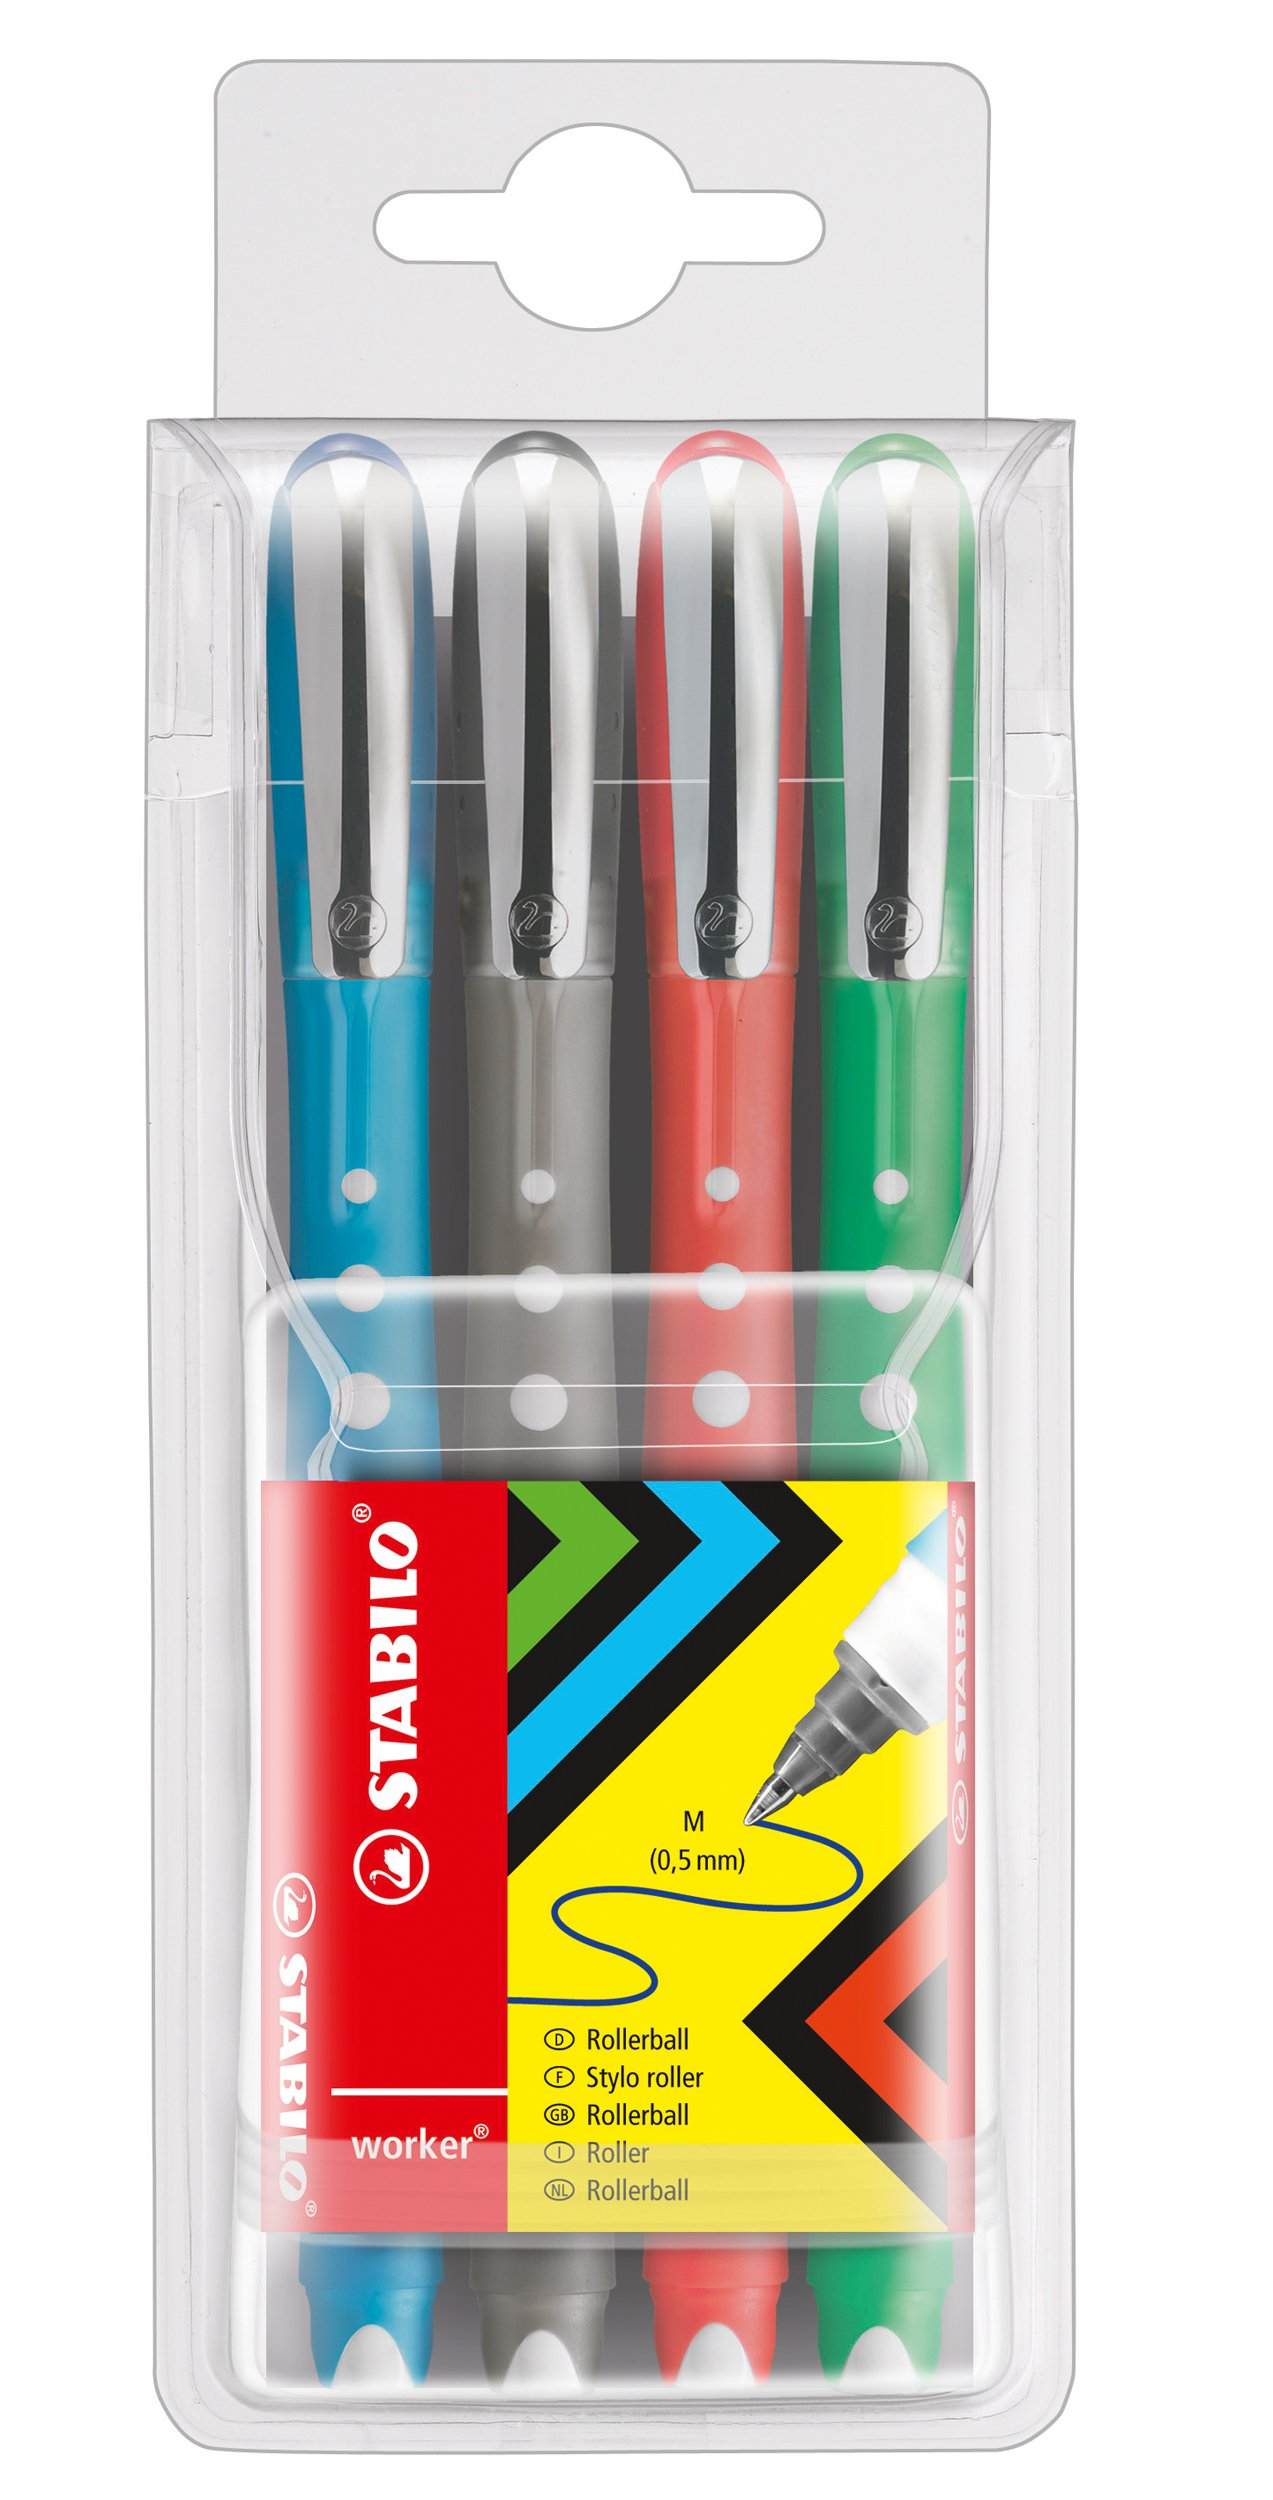 STABILO worker + colorful – Rollerball – Estuche con 4 colores